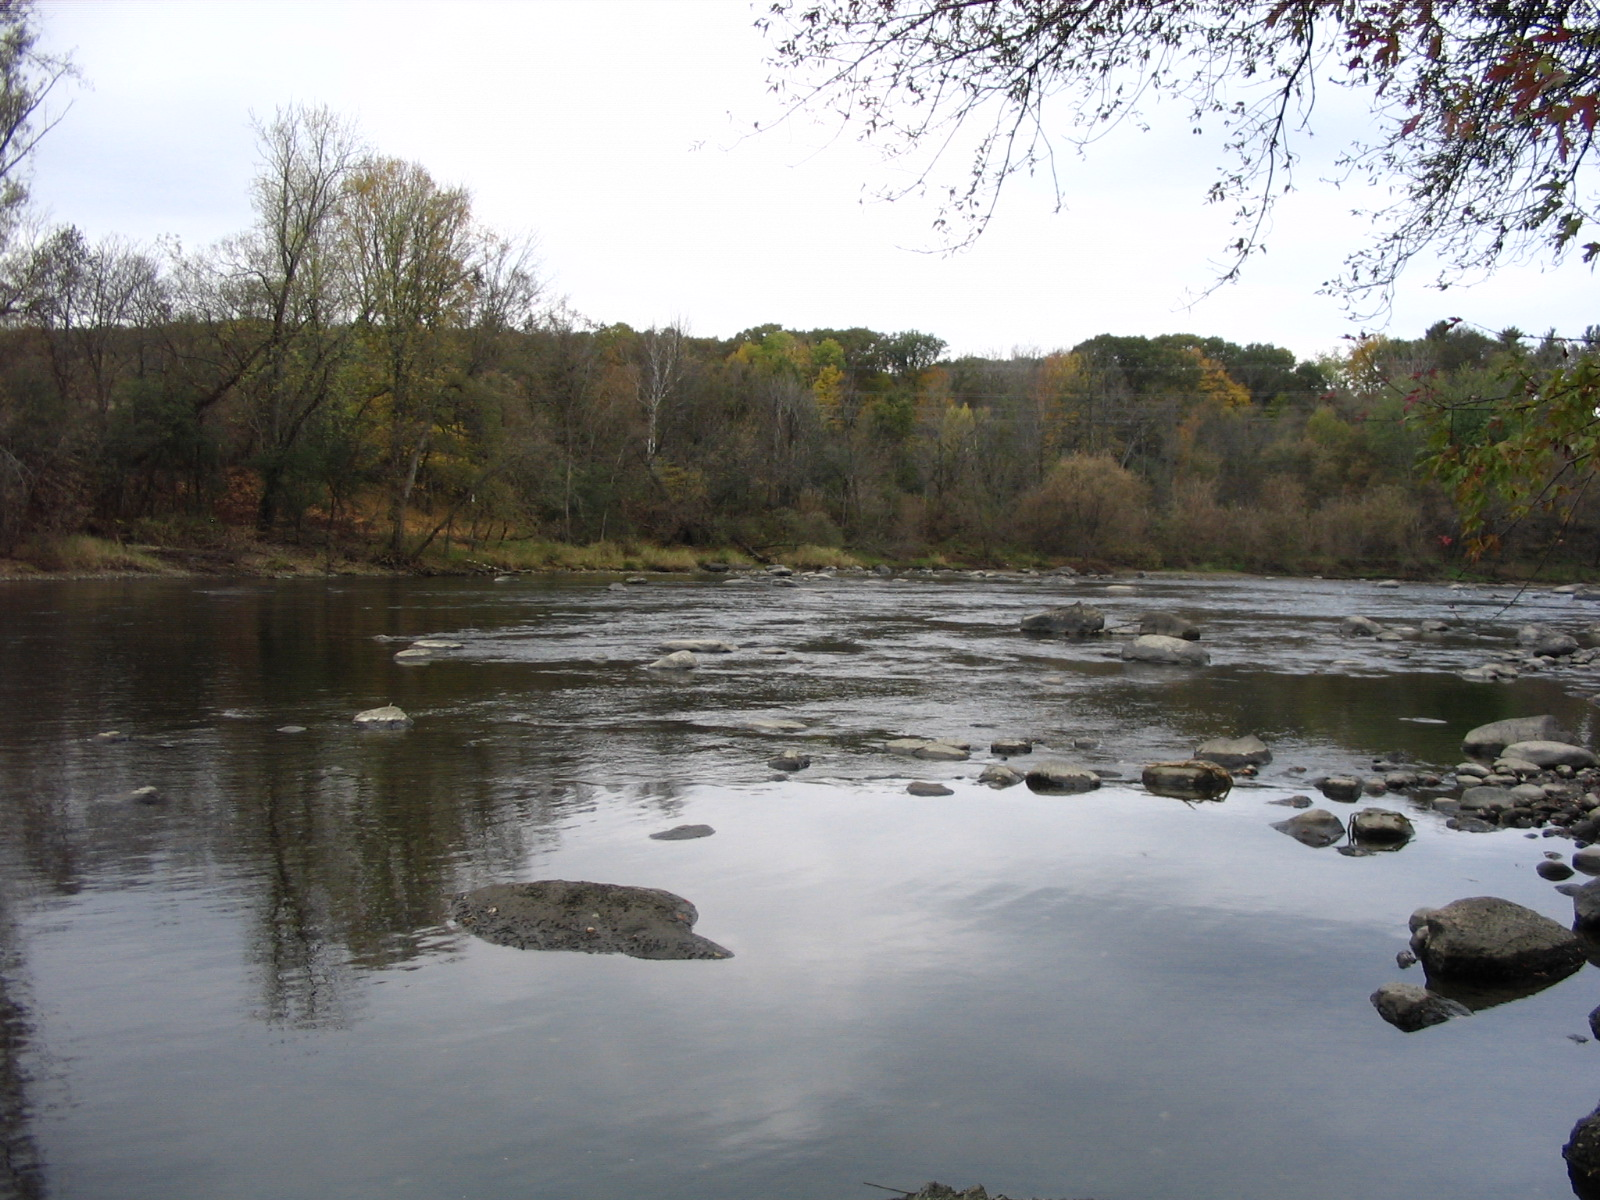 Photograph of the Winooski River at Essex Junction, VT (ESSV1) looking downstream